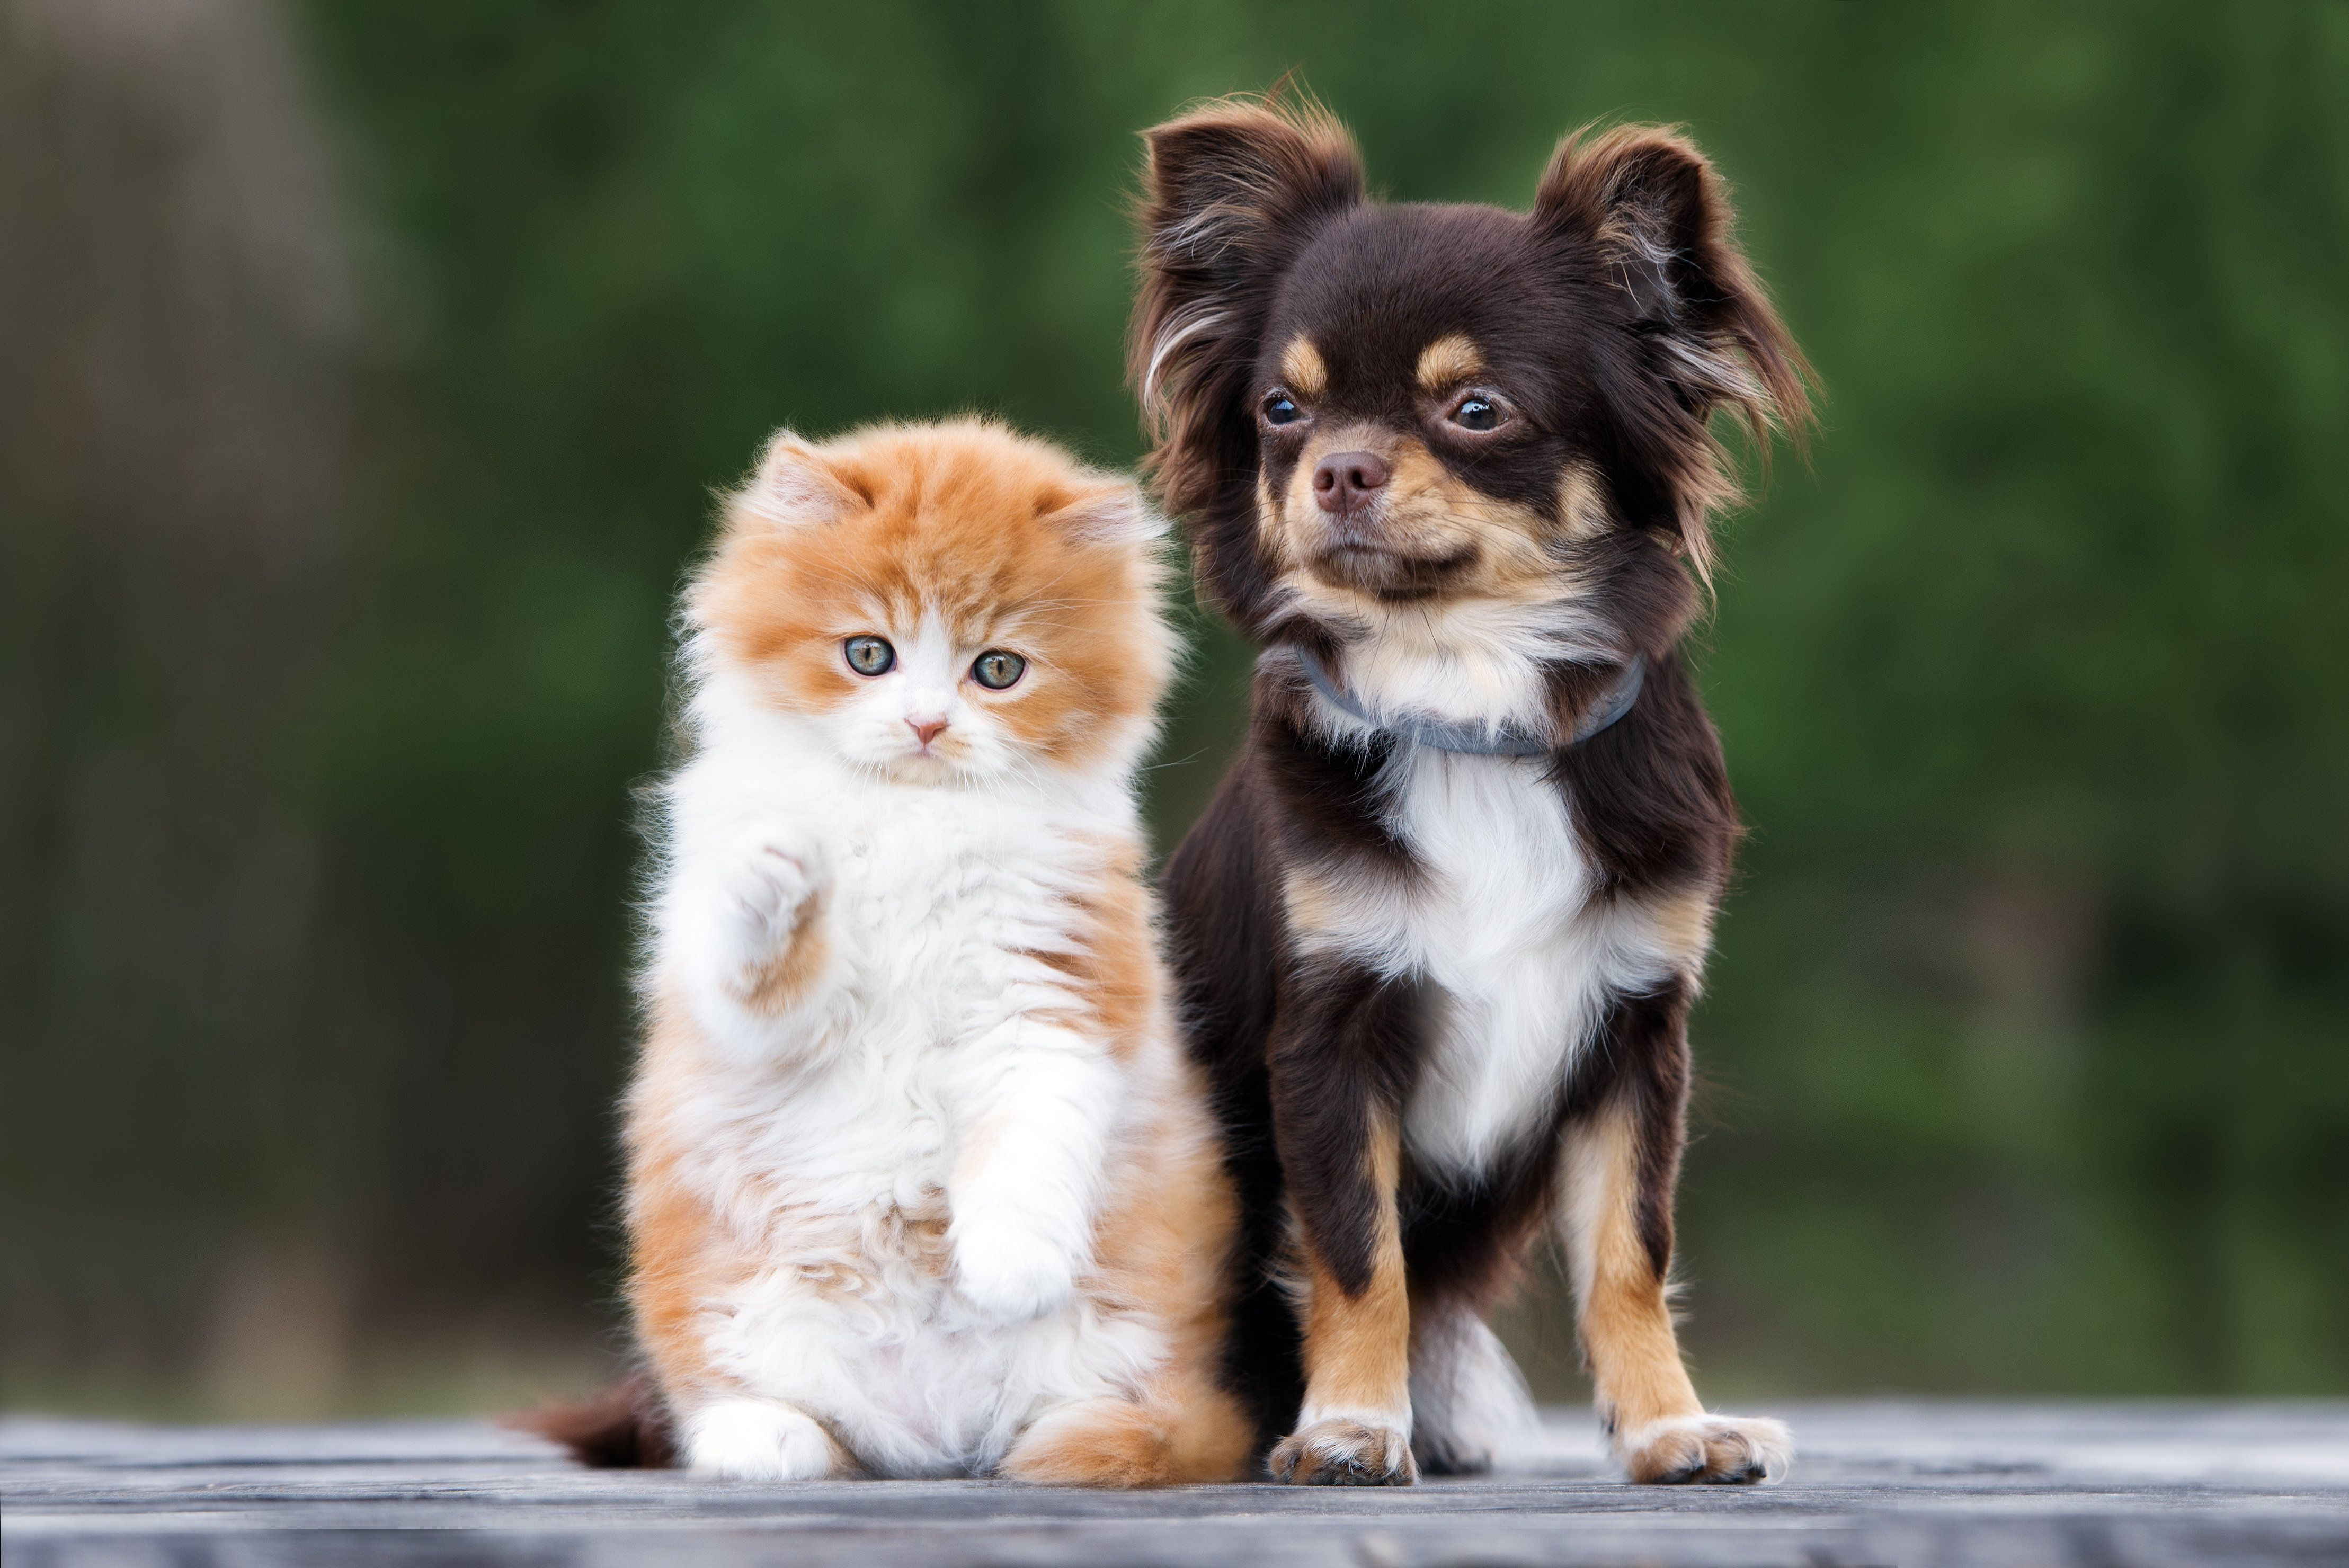 California Bans Pet Shop Sales Of Non-Rescue Cats, Dogs And